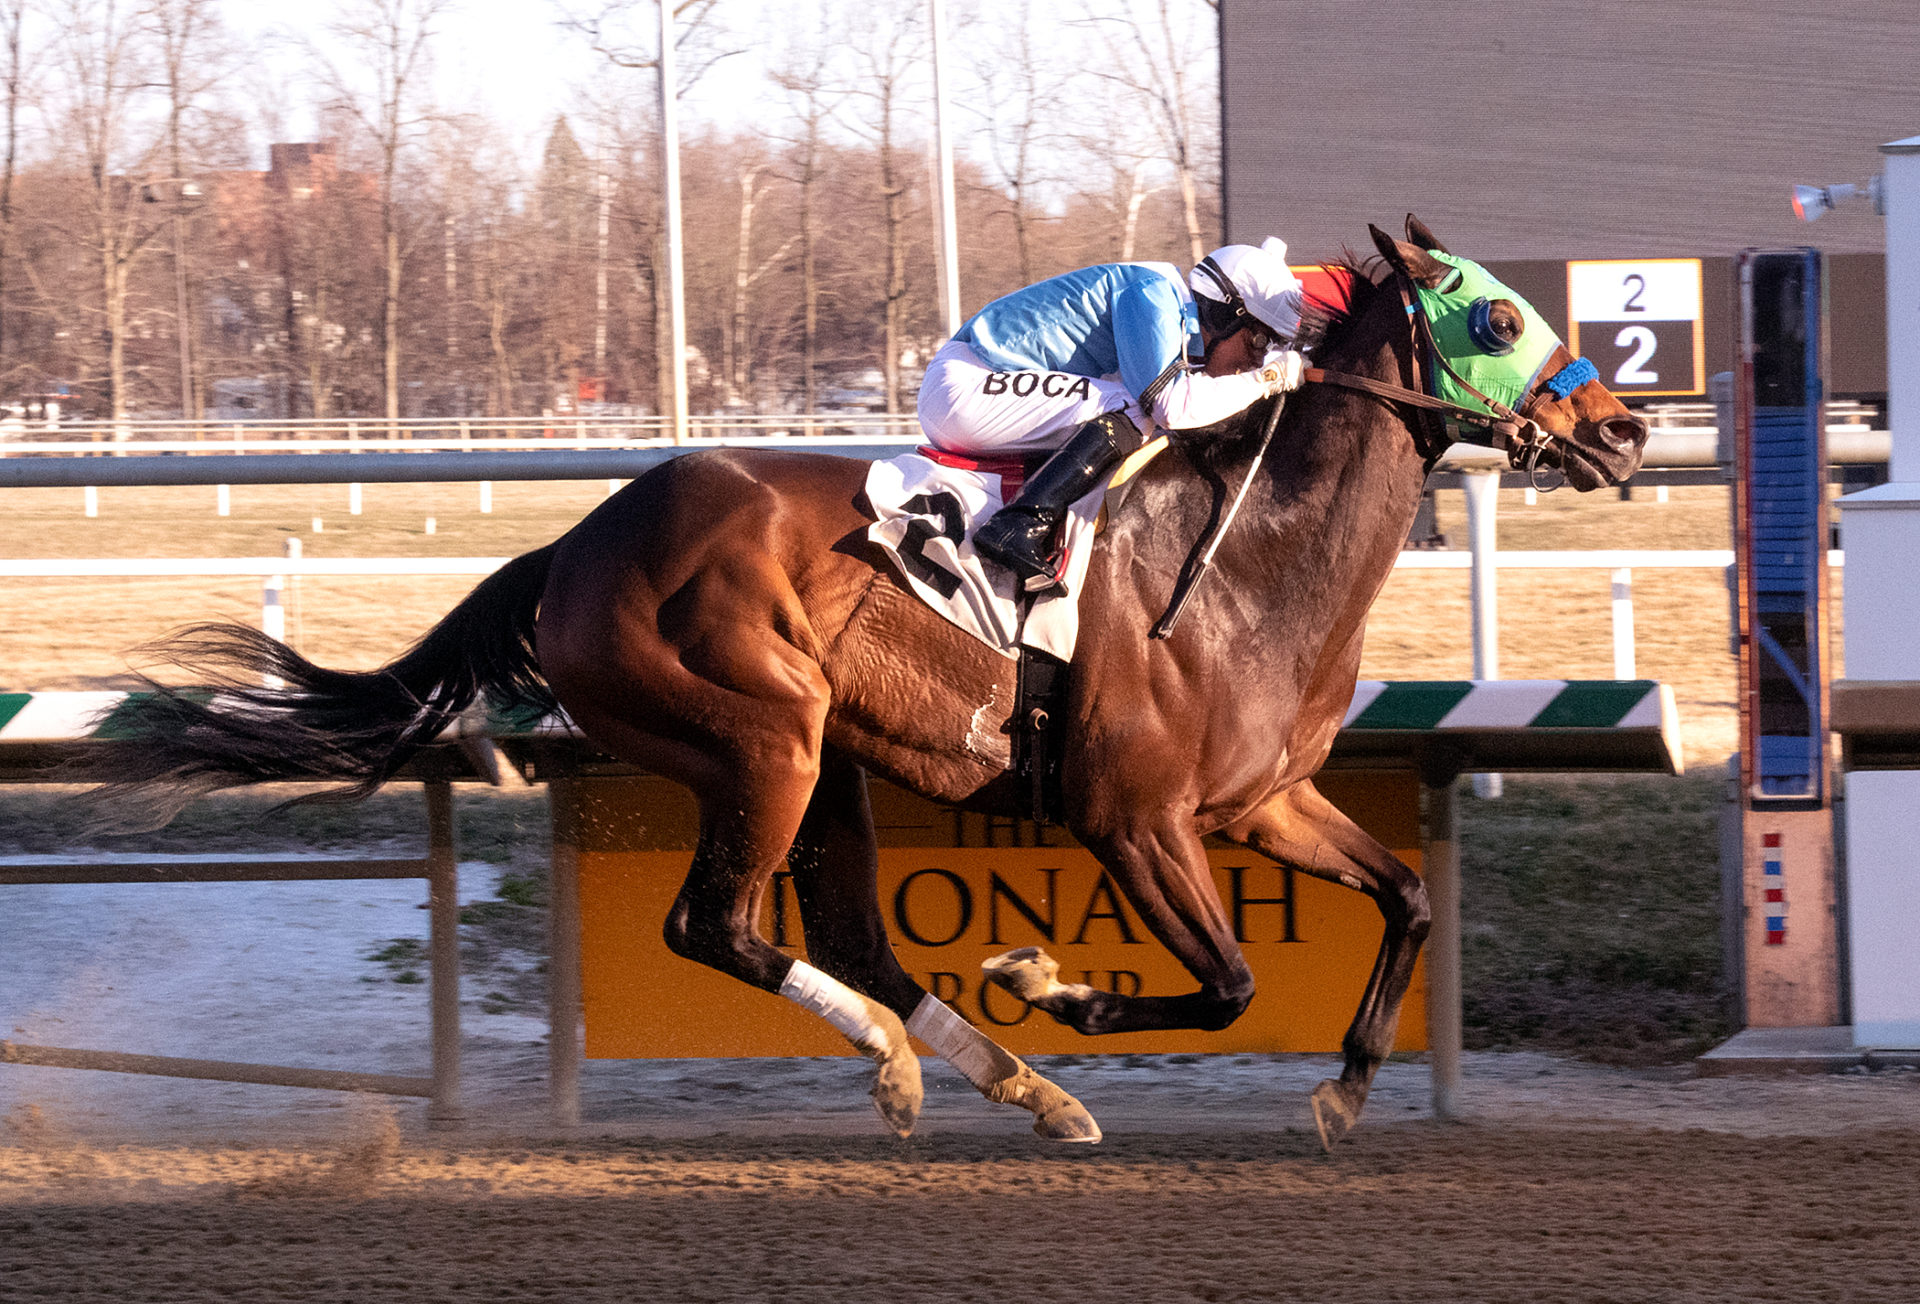 Was MD-bred stakes a MATCH preview?